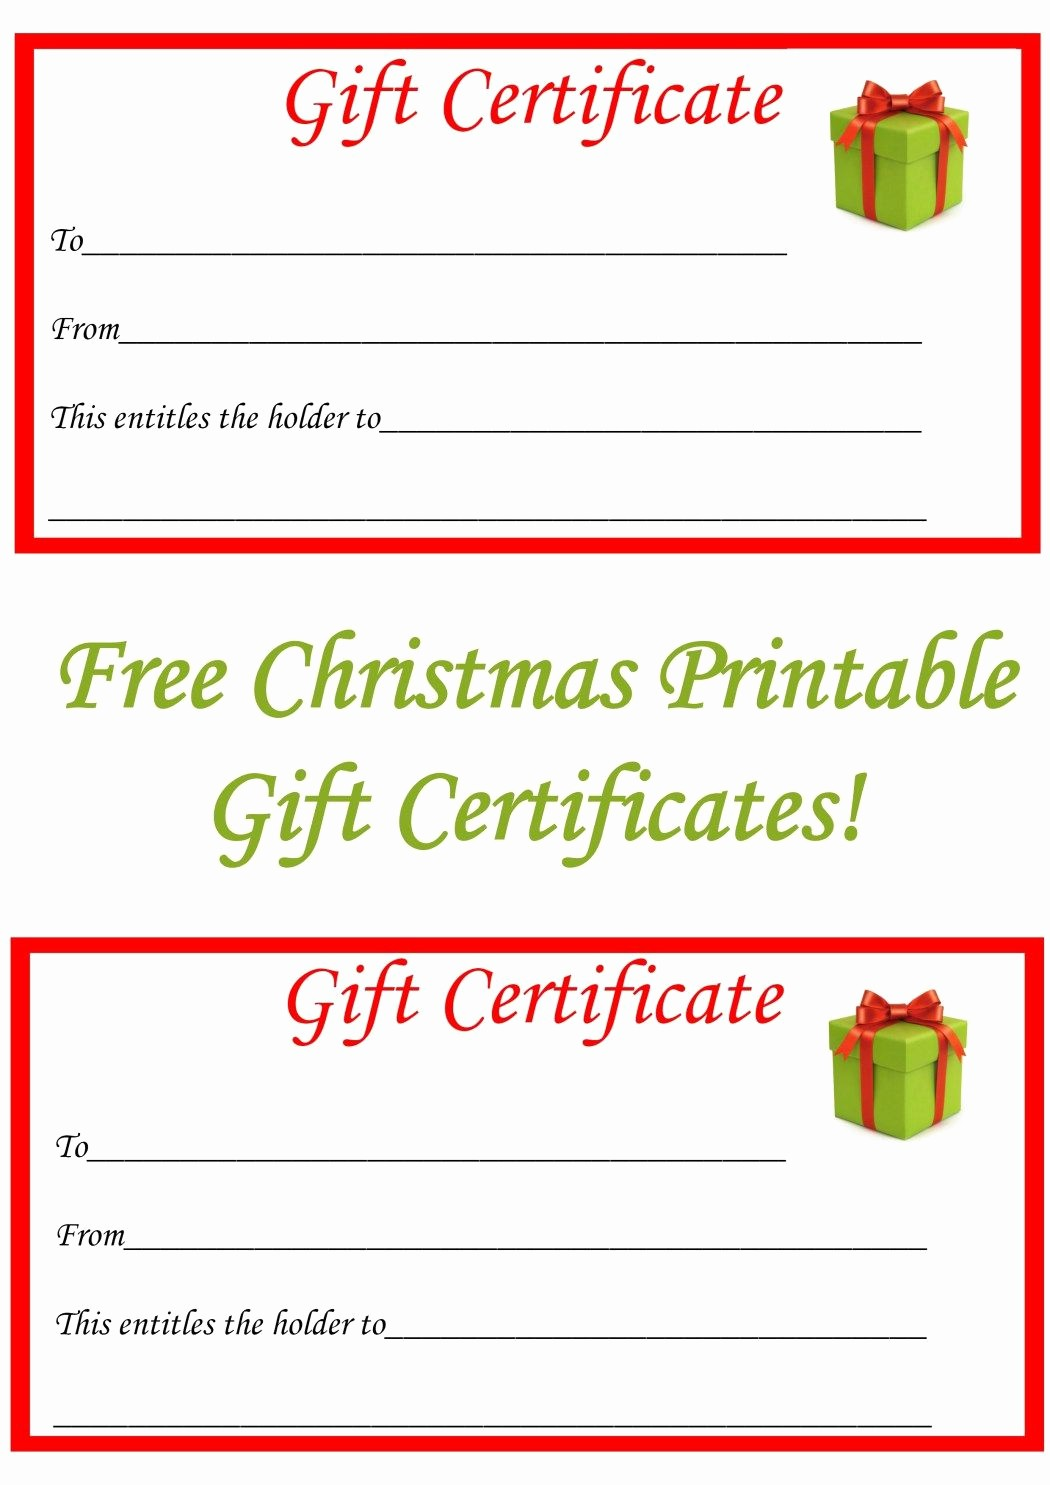 Gift Certificate Samples Free Templates Elegant Best 25 Printable T Certificates Ideas On Pinterest